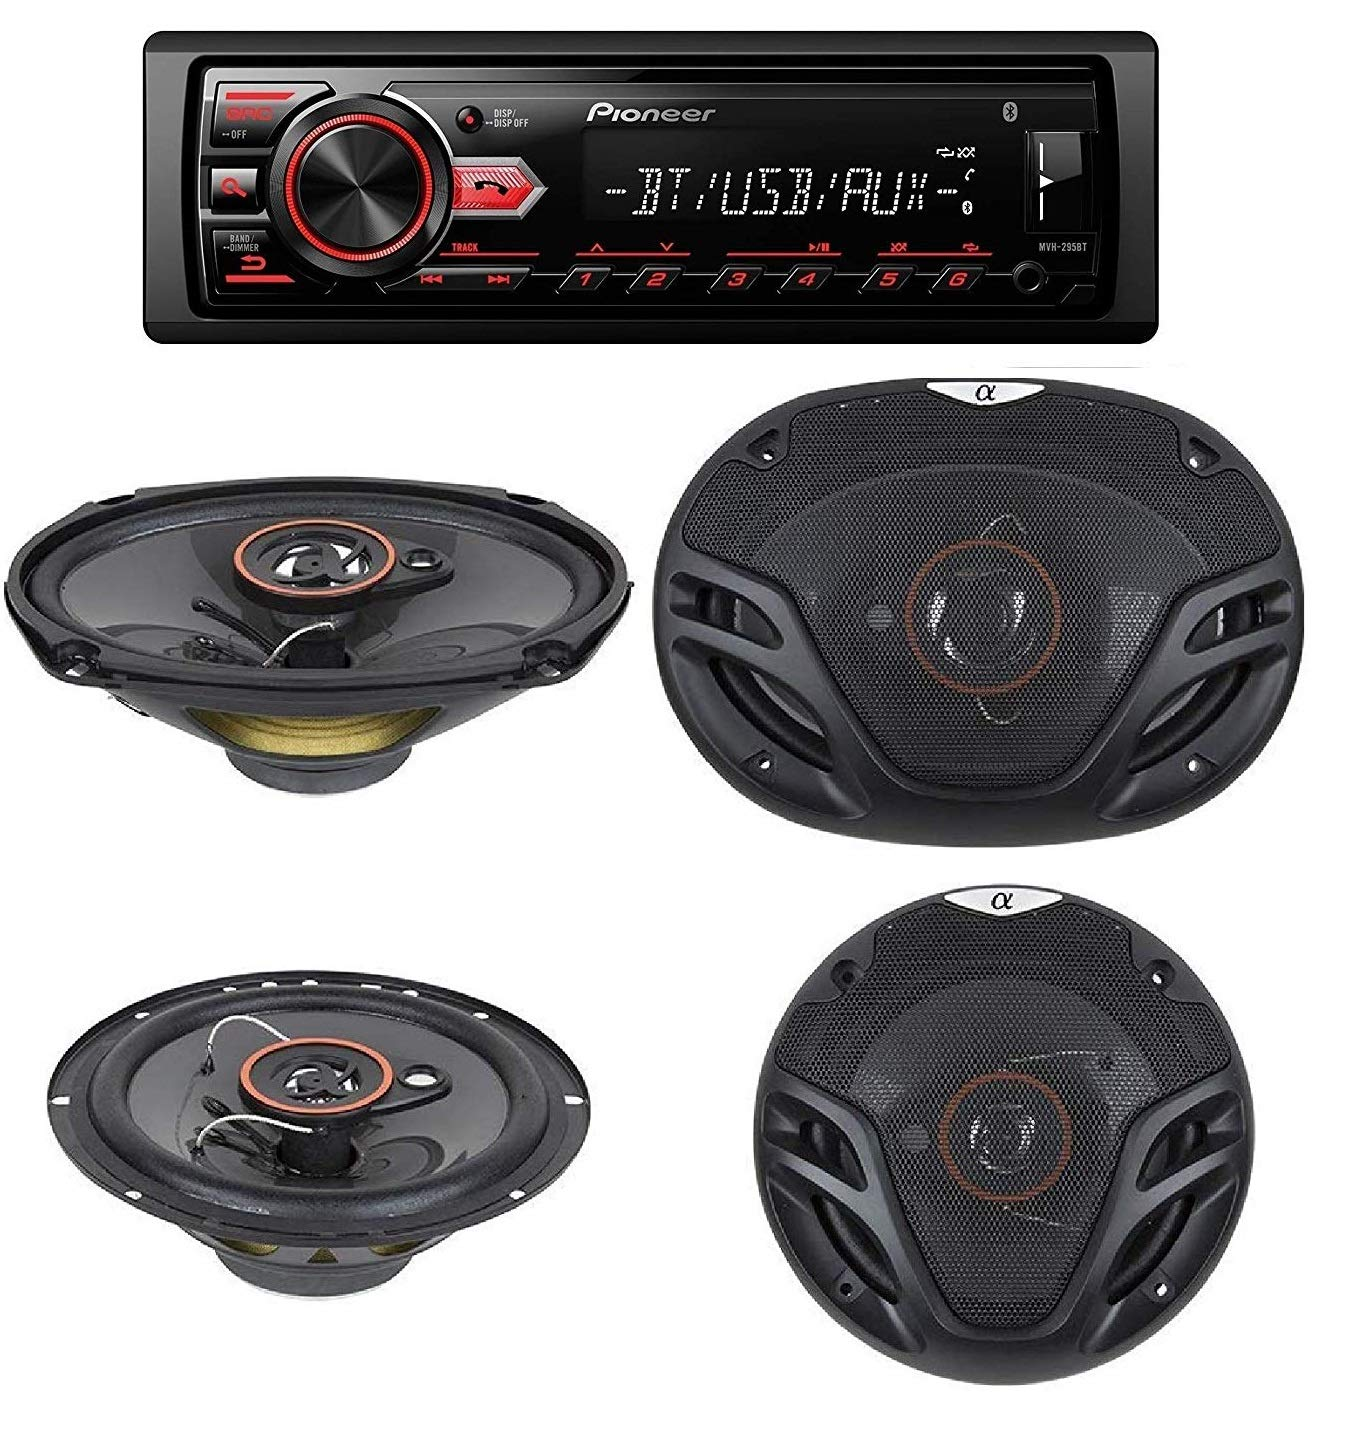 Pioneer Receiver With Two 6.5-Inch and Two 6x9-Inch Speakers